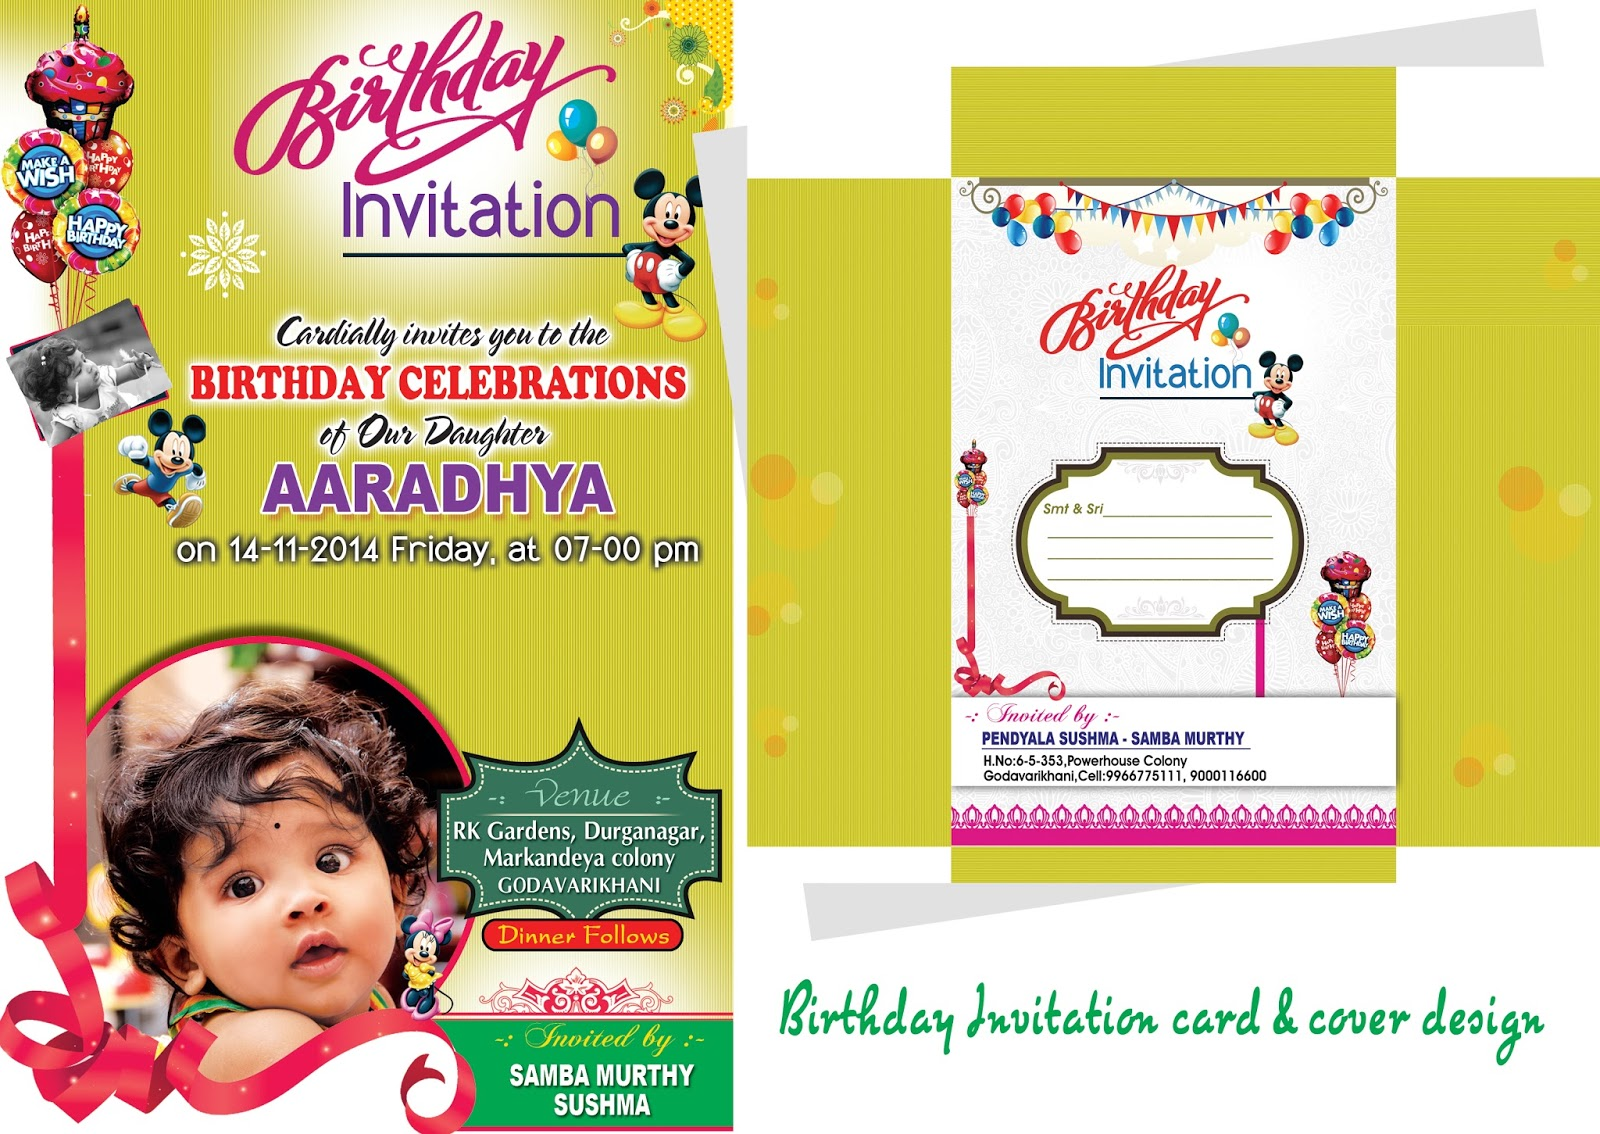 1st birthday banner background design ; design_birthday_invitations_to_get_ideas_how_to_make_your_own_birthday_invitation_design_20_6